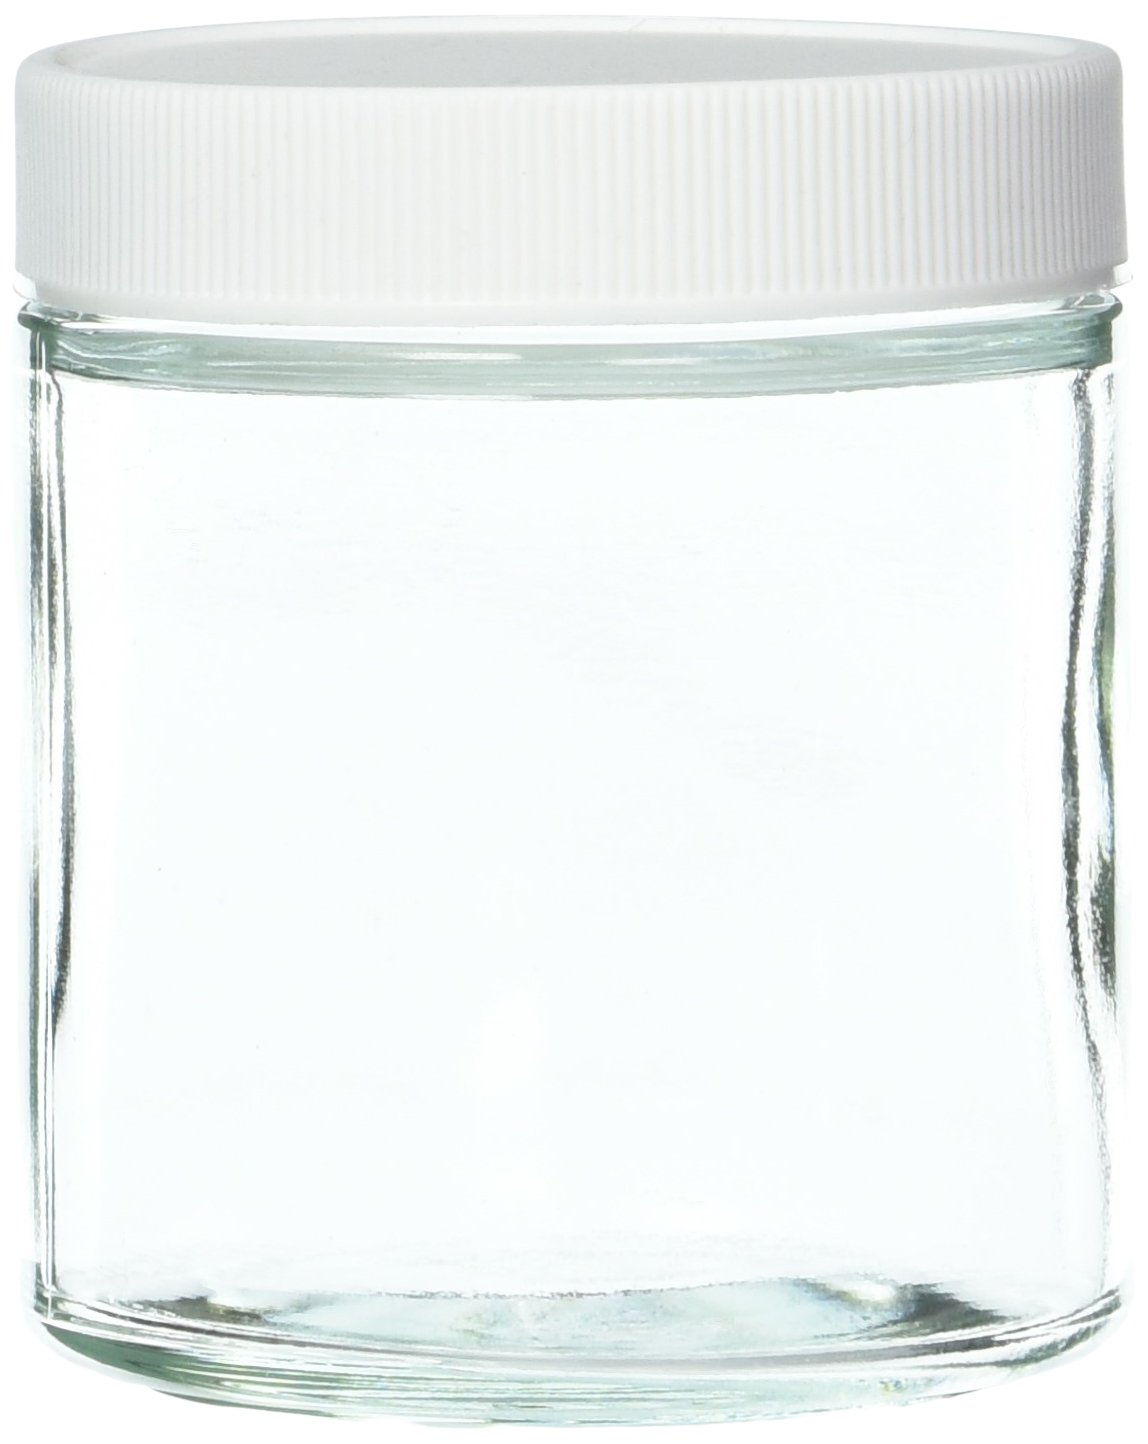 JG Finneran 9-181-2 Clear Borosilicate Glass Precleaned Short Straight Sided Wide Mouth Jar with White Polypropylene Closure and 0.015'' PTFE Lined, 58-400mm Cap Size, 125mL Capacity (Pack of 24)